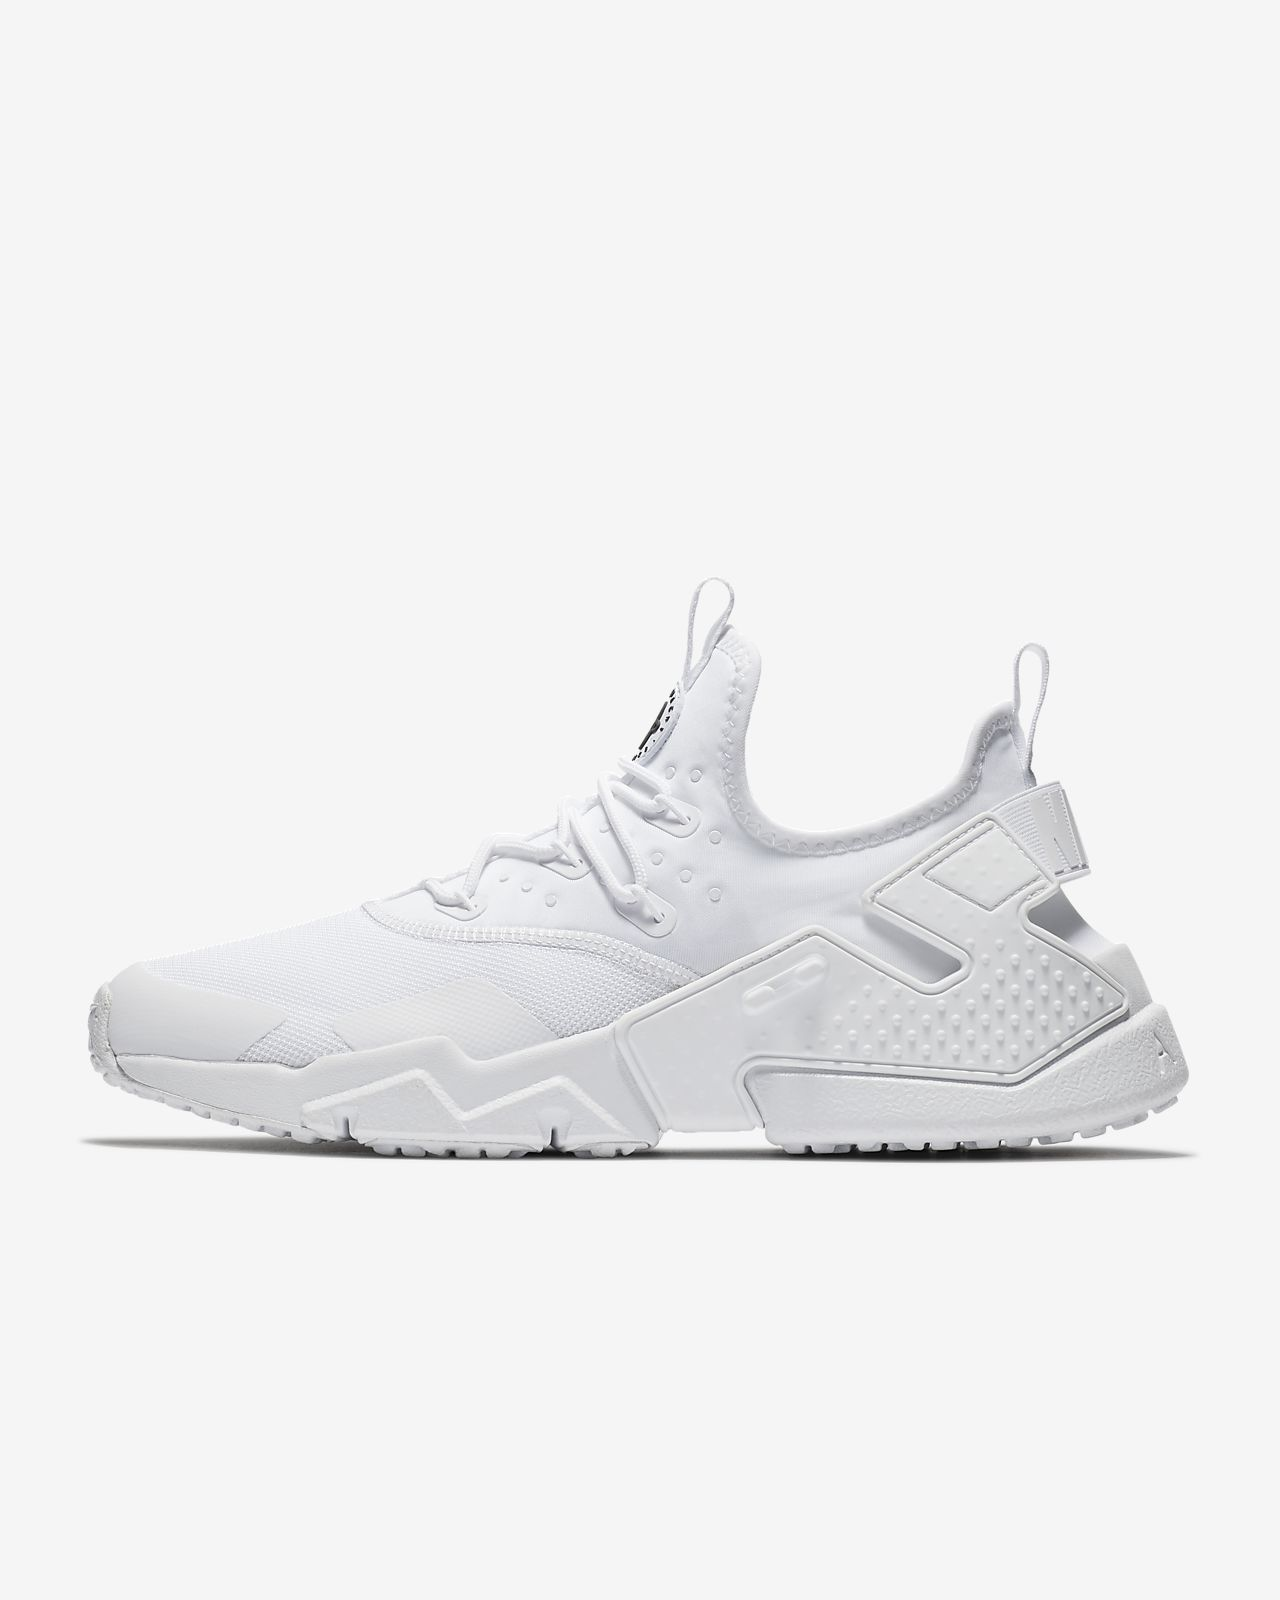 21437965d6b2 Nike Air Huarache Drift Men s Shoe. Nike.com